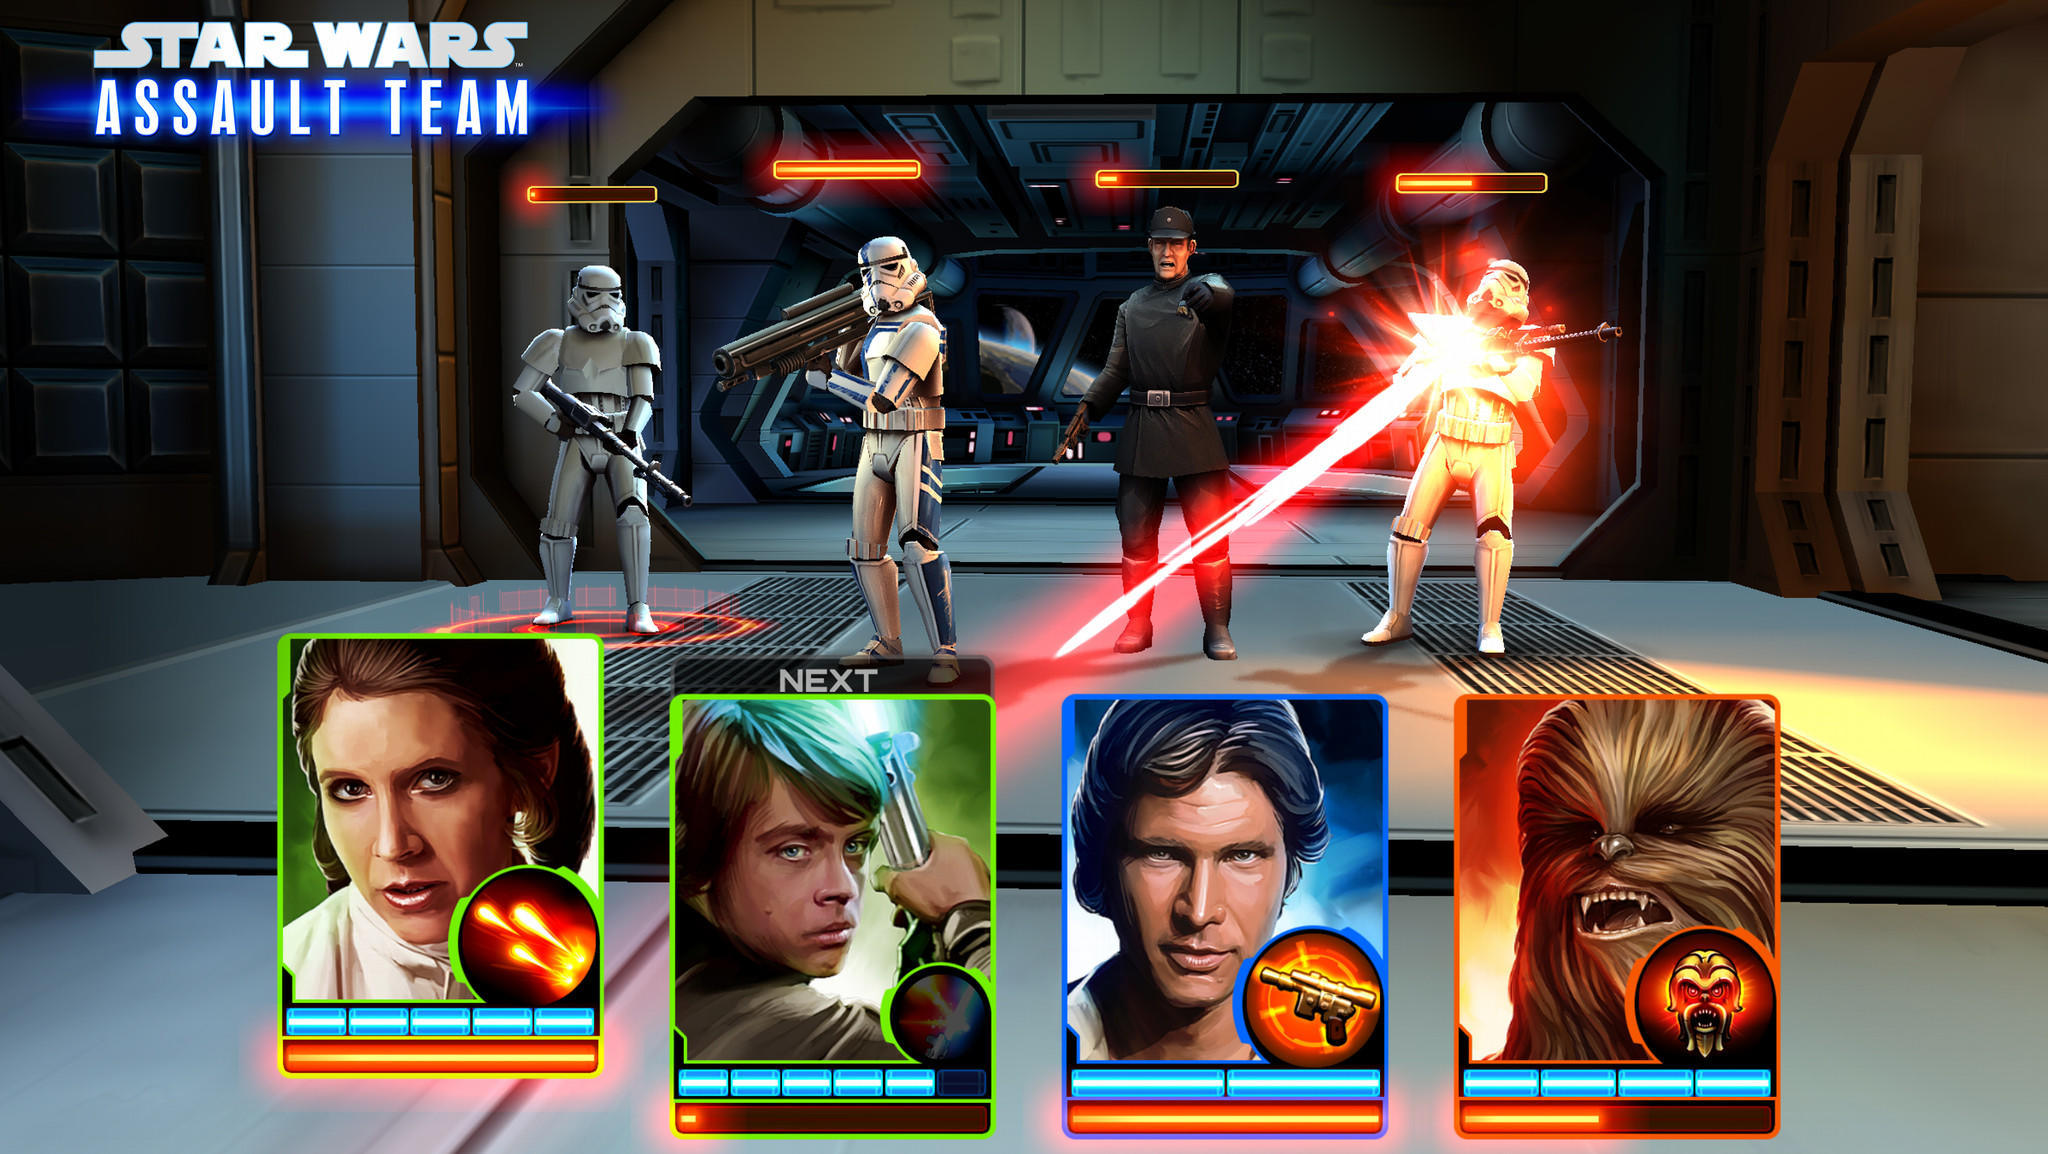 A screenshot from 'Star Wars: Assault Team', a new game for mobile devices from Disney Interactive, in partnership with LucasArts.